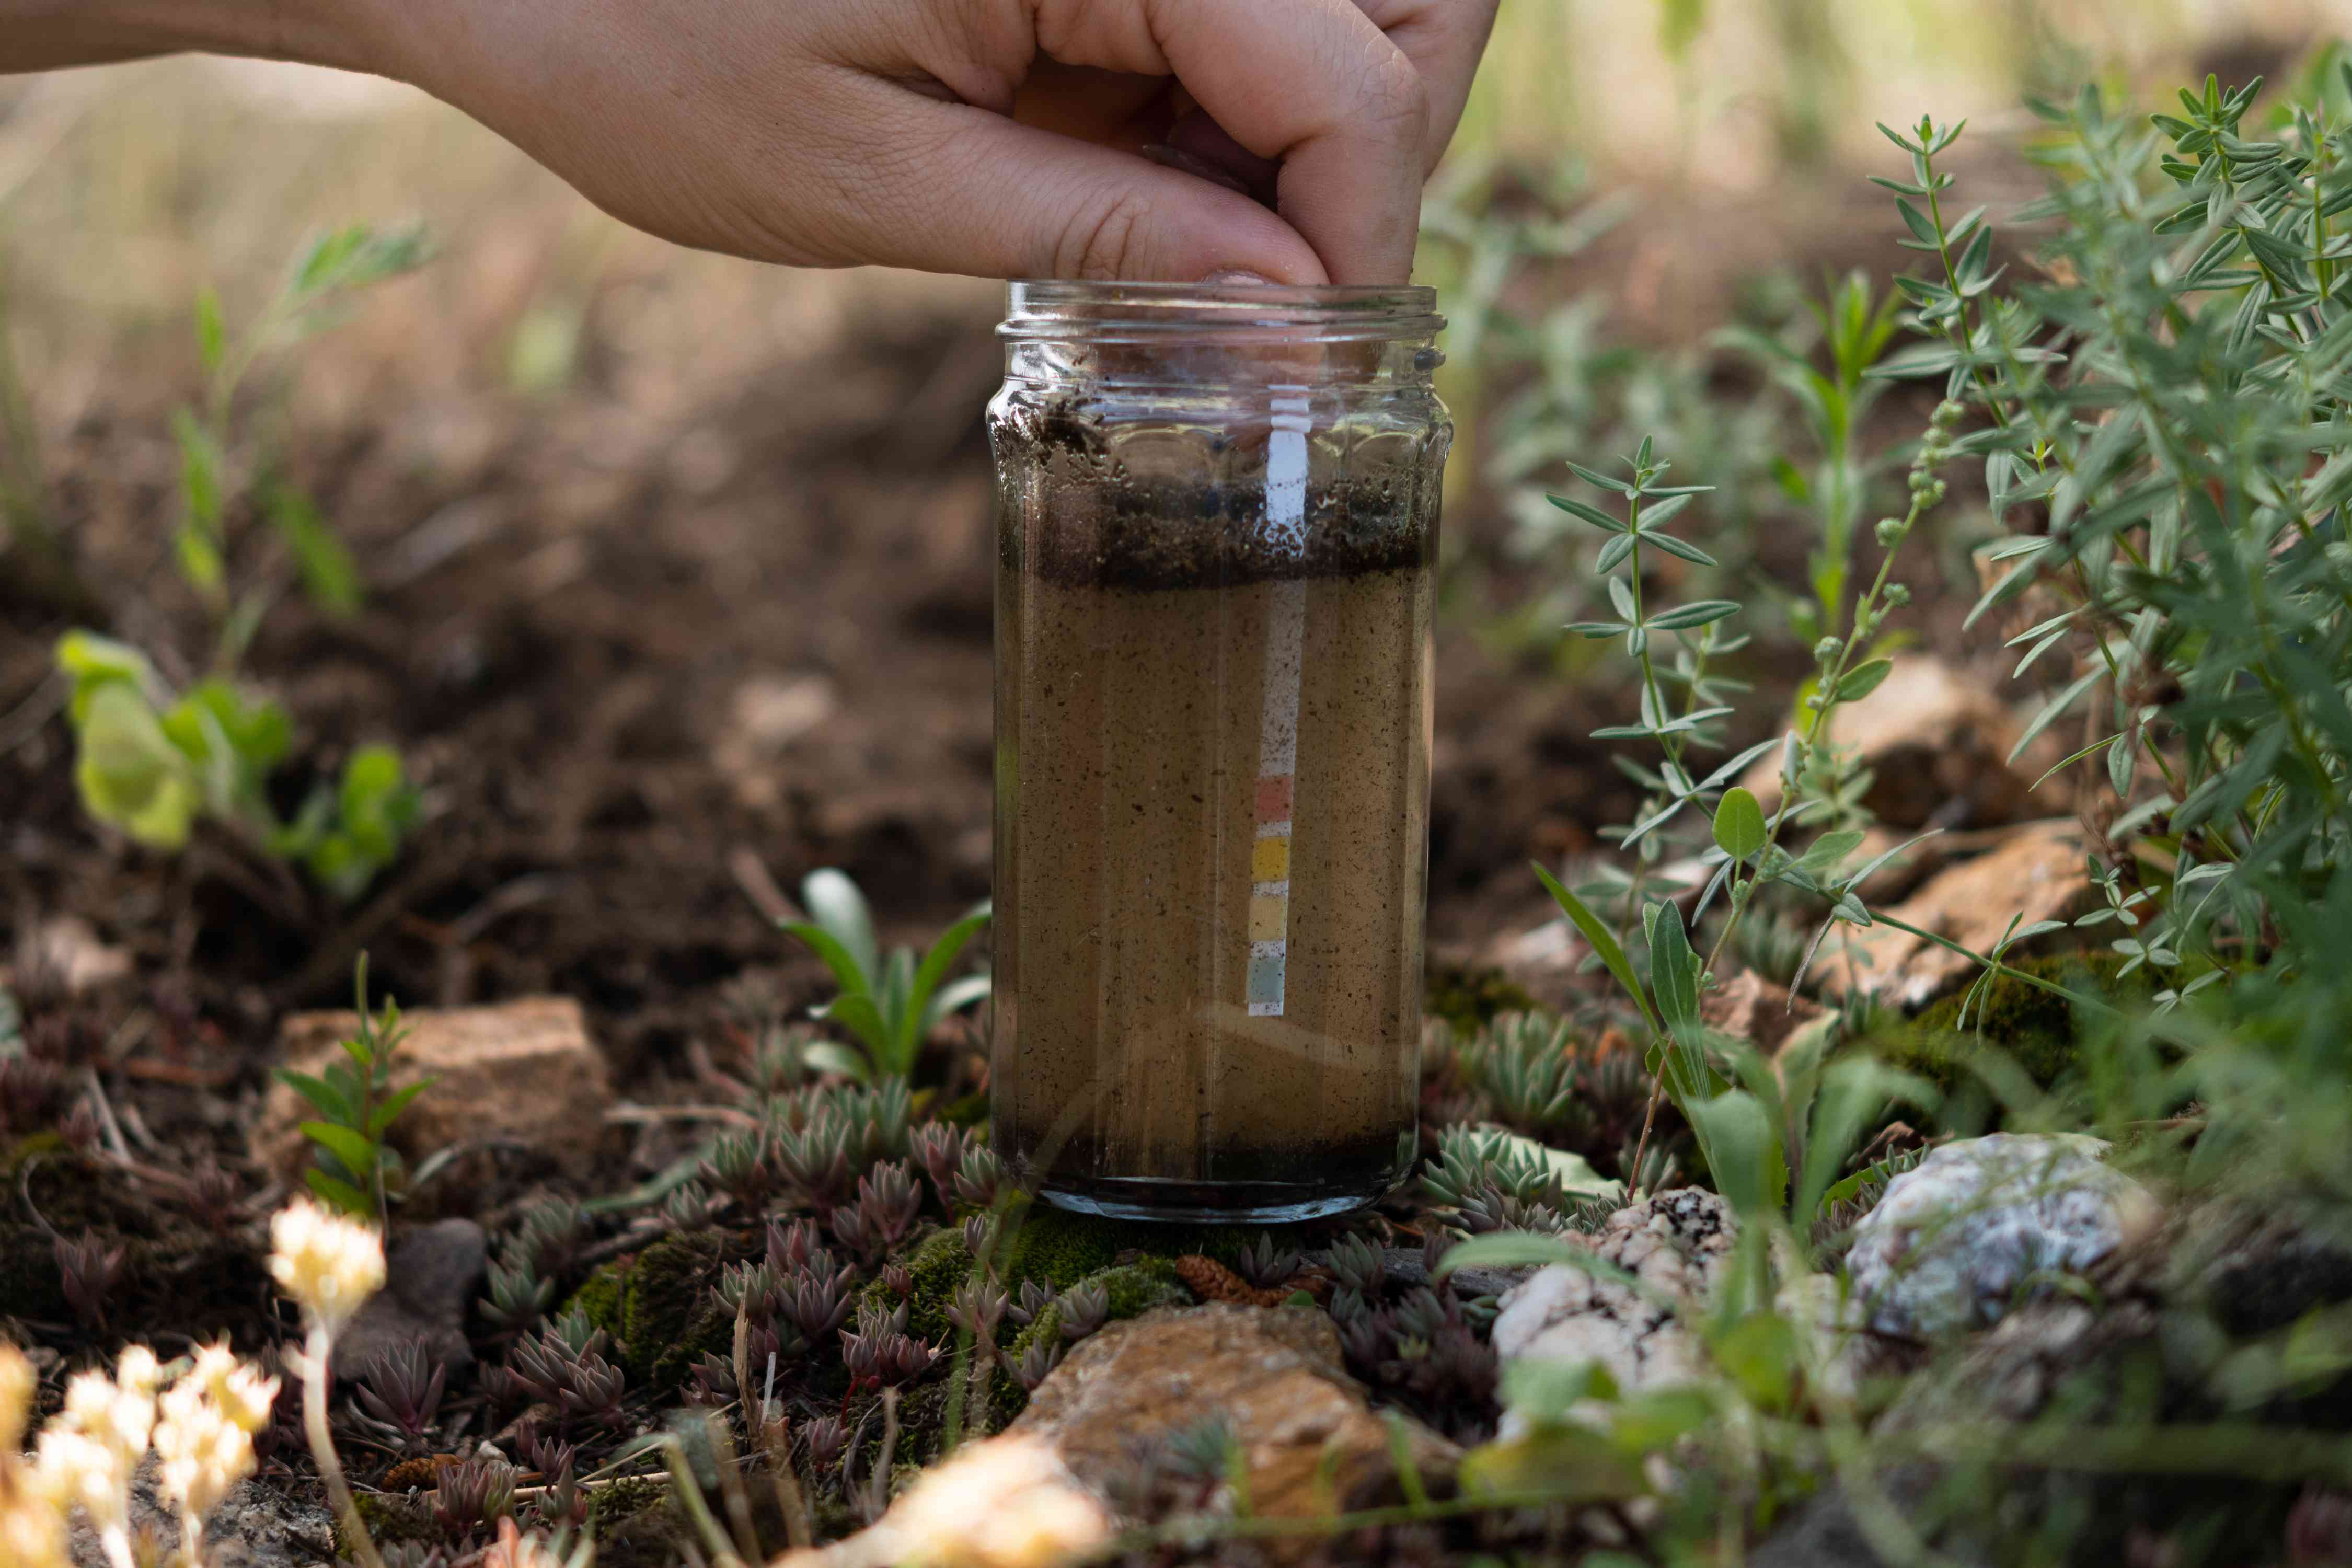 Soil being tested for acidity with pH strips in glass jar of water